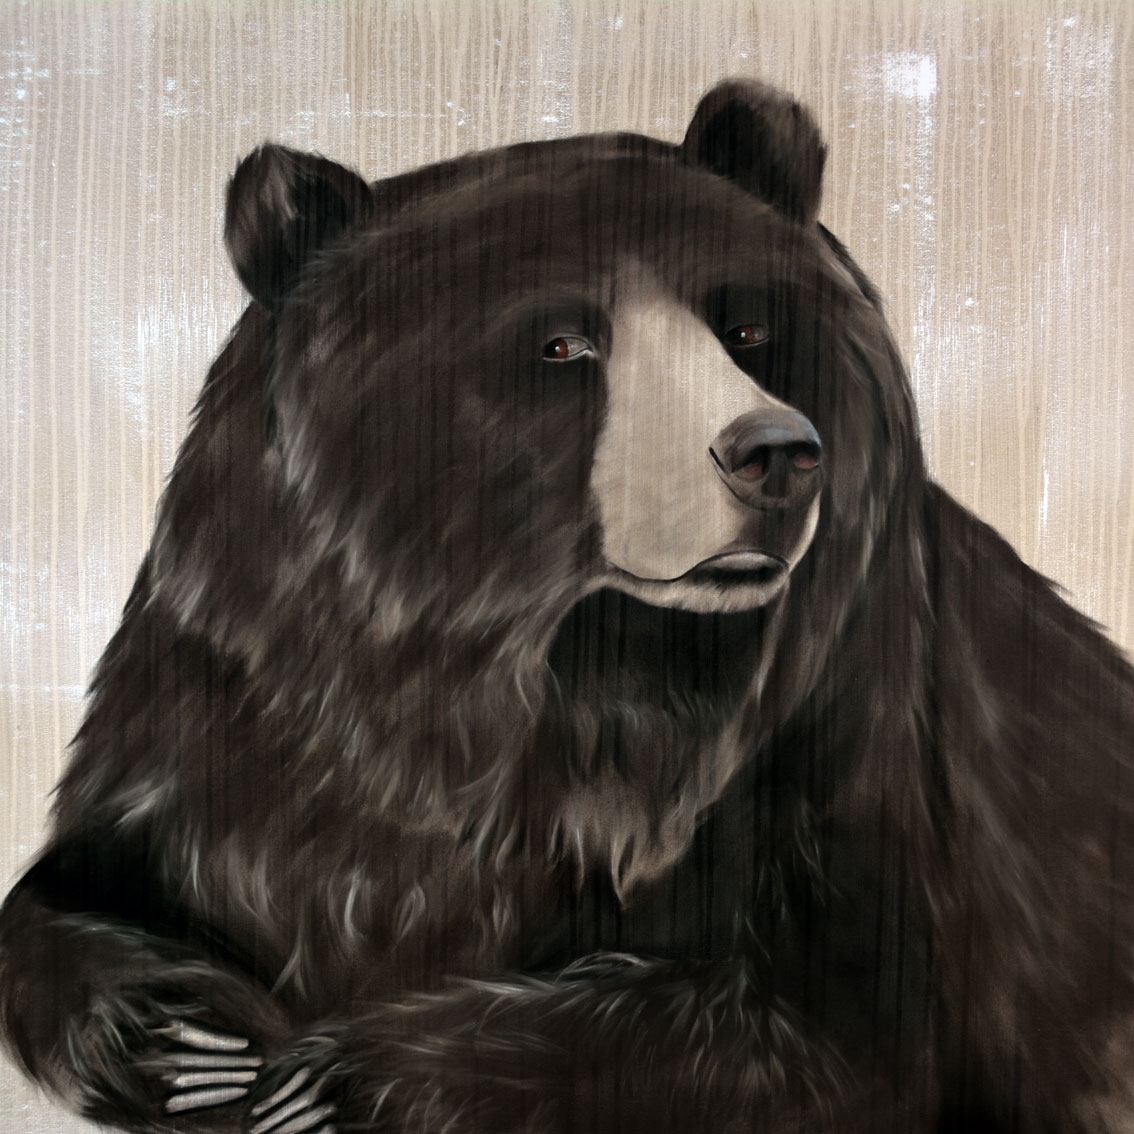 GRIZZLY BEAR BEAR-BROWN-BEAR-GRIZZLY Animal painting by Thierry Bisch pets wildlife artist painter canvas art decoration